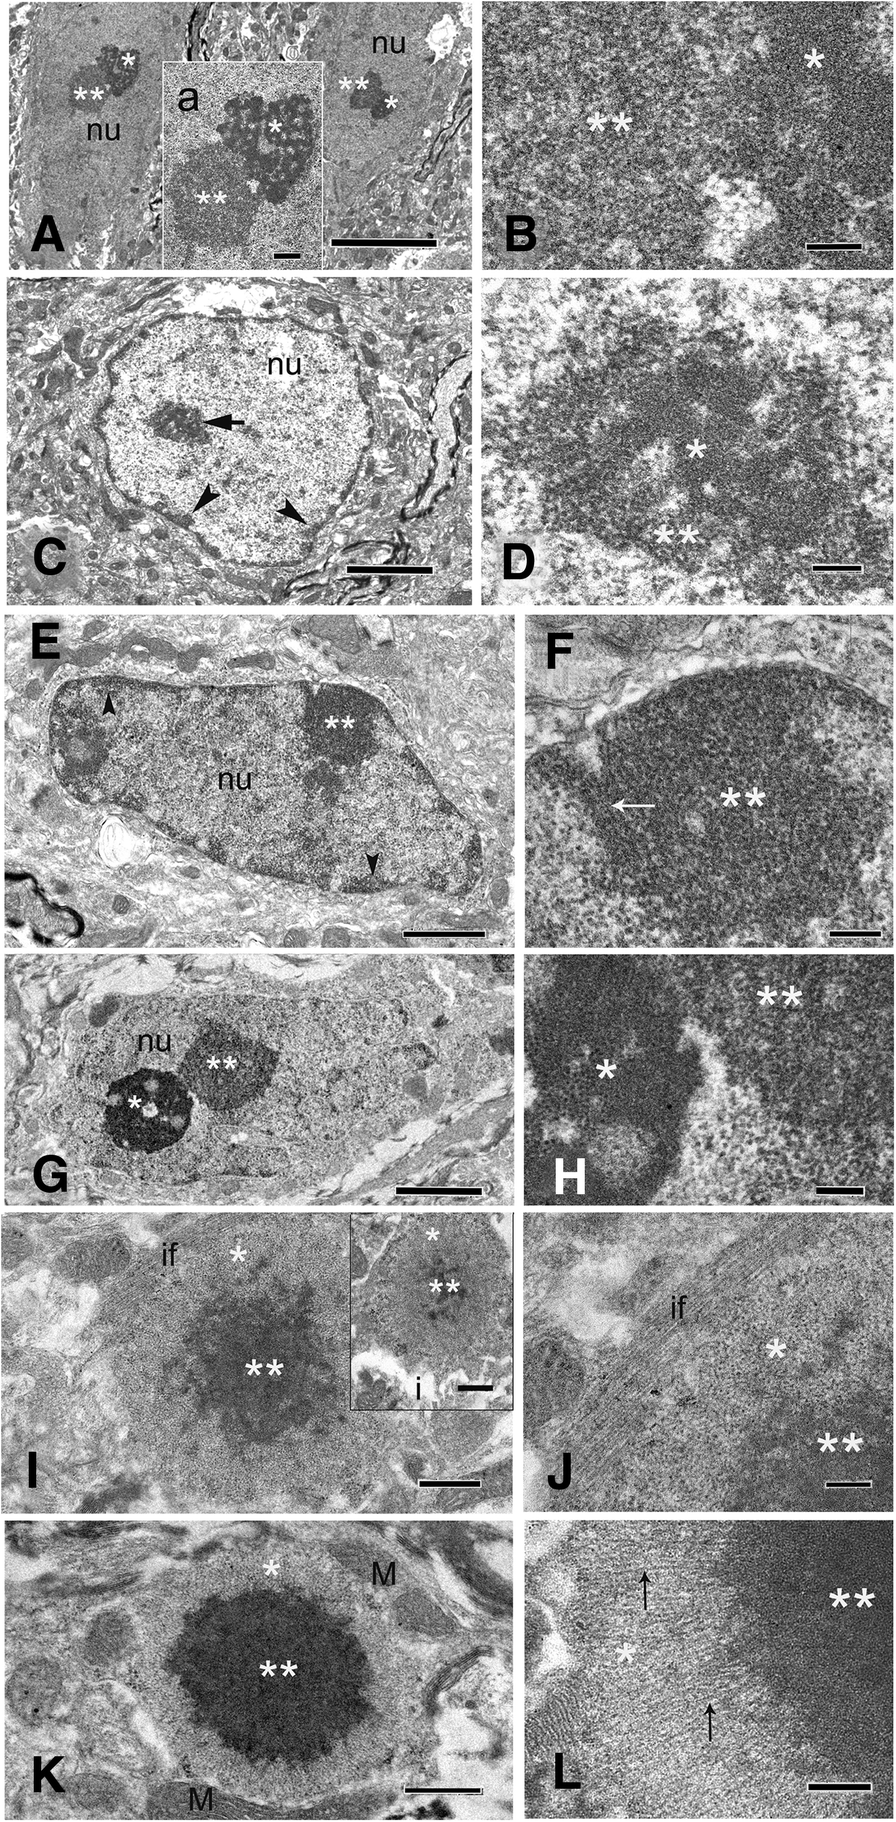 Astroglial-targeted expression of the fragile X CGG repeat